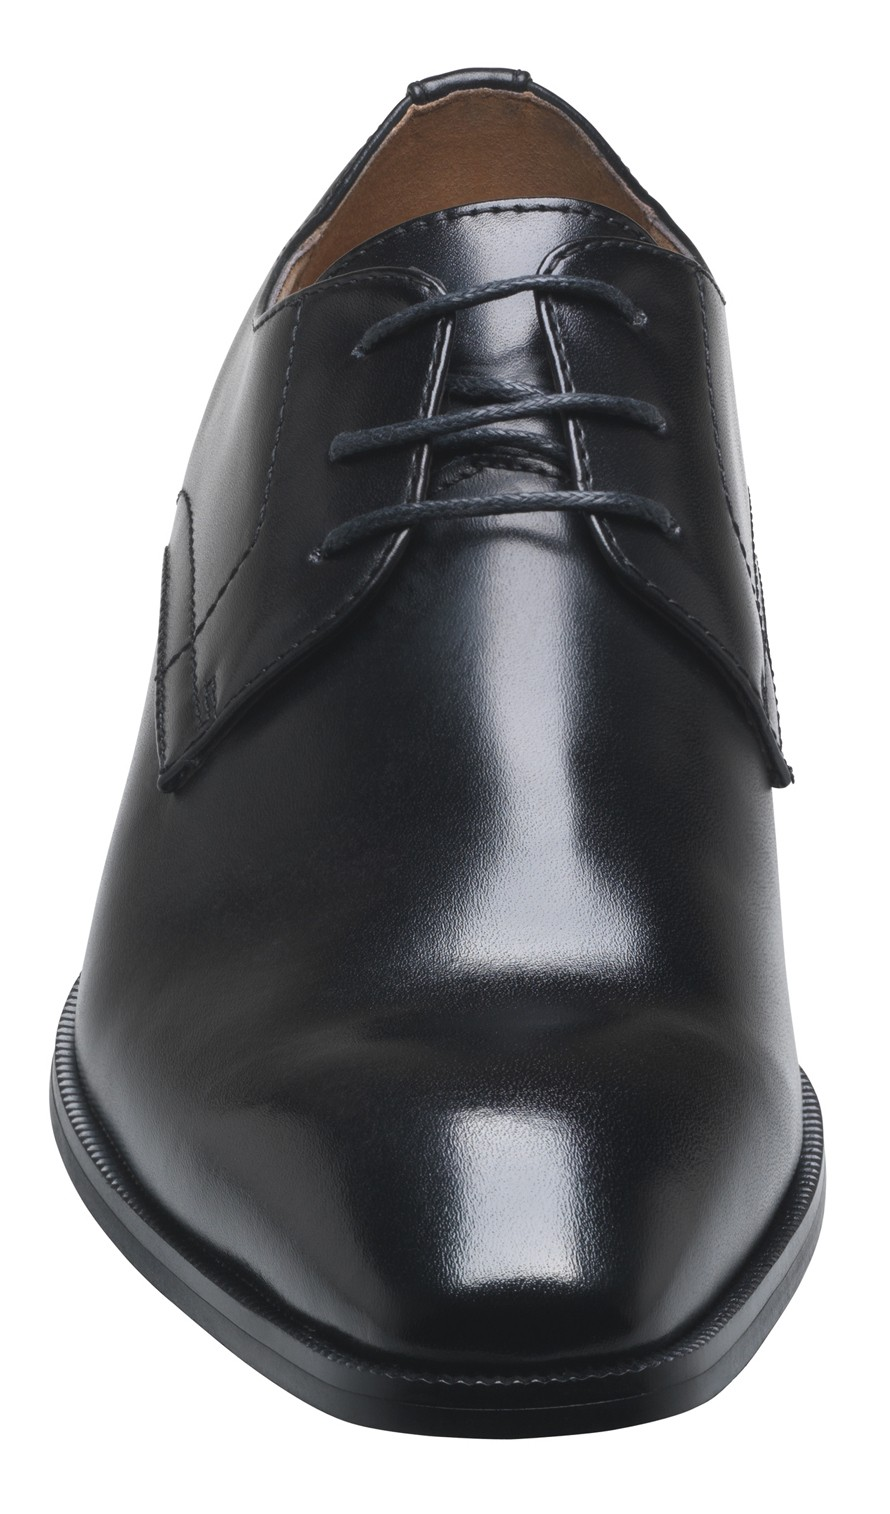 Chaussure homme costume bout rond